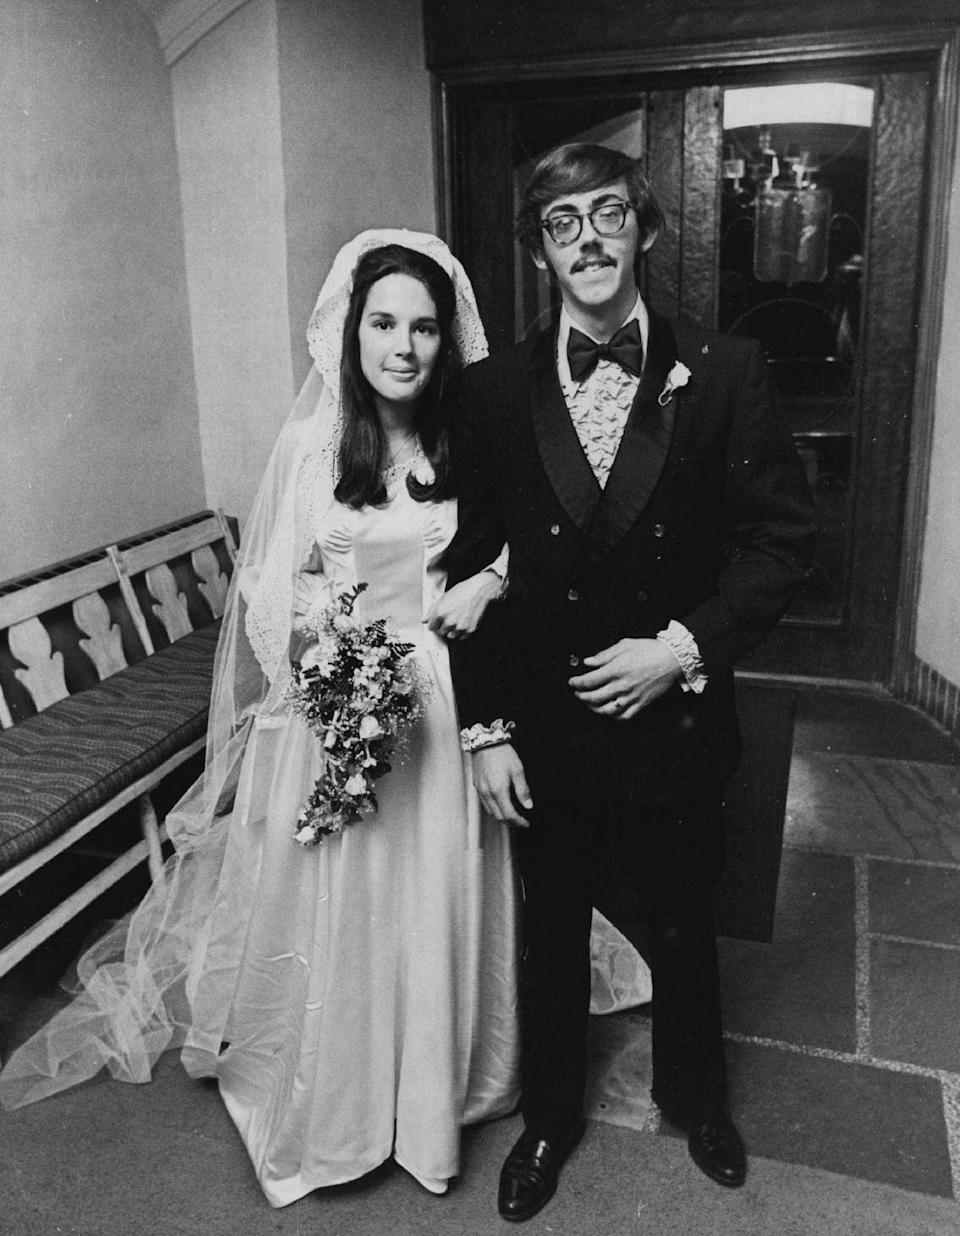 """<p>It wouldn't be a '70s wedding without a guy wearing a ruffled shirt with his tux.The bride's look is a bit more timeless, with a floor-length gown and spray-style bouquet.</p><p><a href=""""http://www.goodhousekeeping.com/life/inspirational-stories/news/a42199/bride-down-syndrome-message/"""" rel=""""nofollow noopener"""" target=""""_blank"""" data-ylk=""""slk:Timeless advice from an inspiring bride »"""" class=""""link rapid-noclick-resp""""><em>Timeless advice from an inspiring bride »</em></a></p>"""